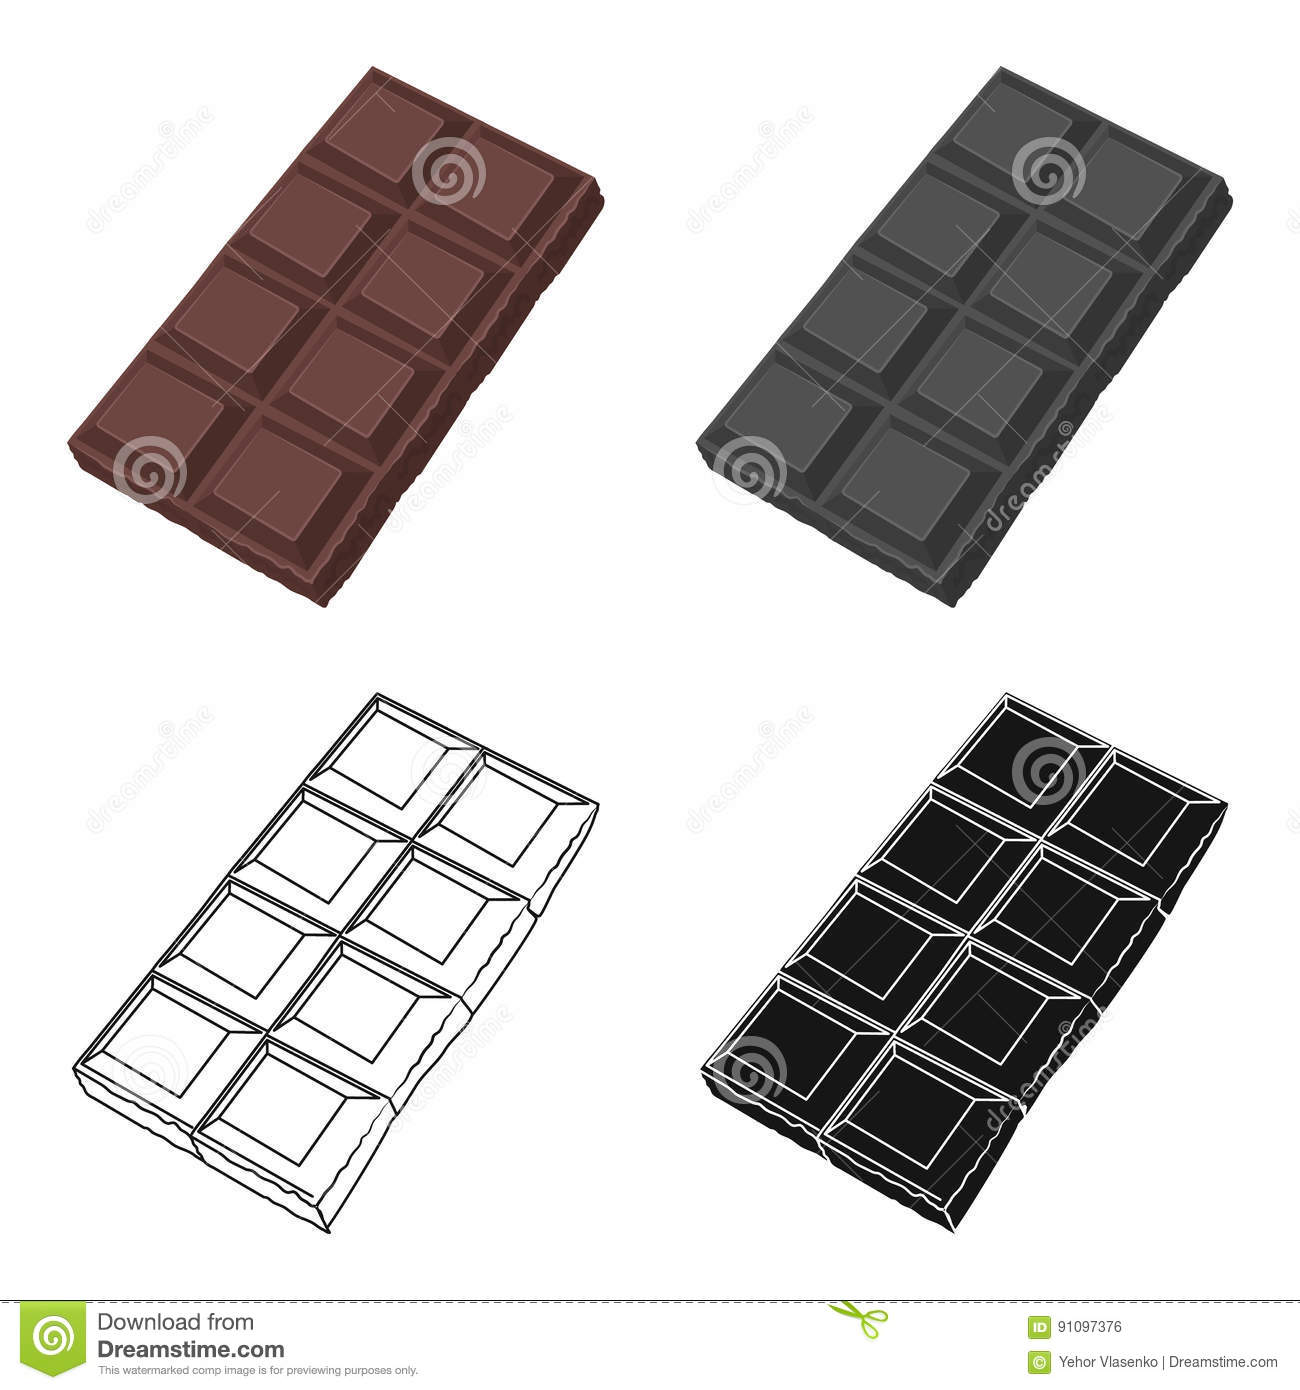 Chocolate icon in cartoon style isolated on white background. Chocolate desserts symbol stock vector illustration.